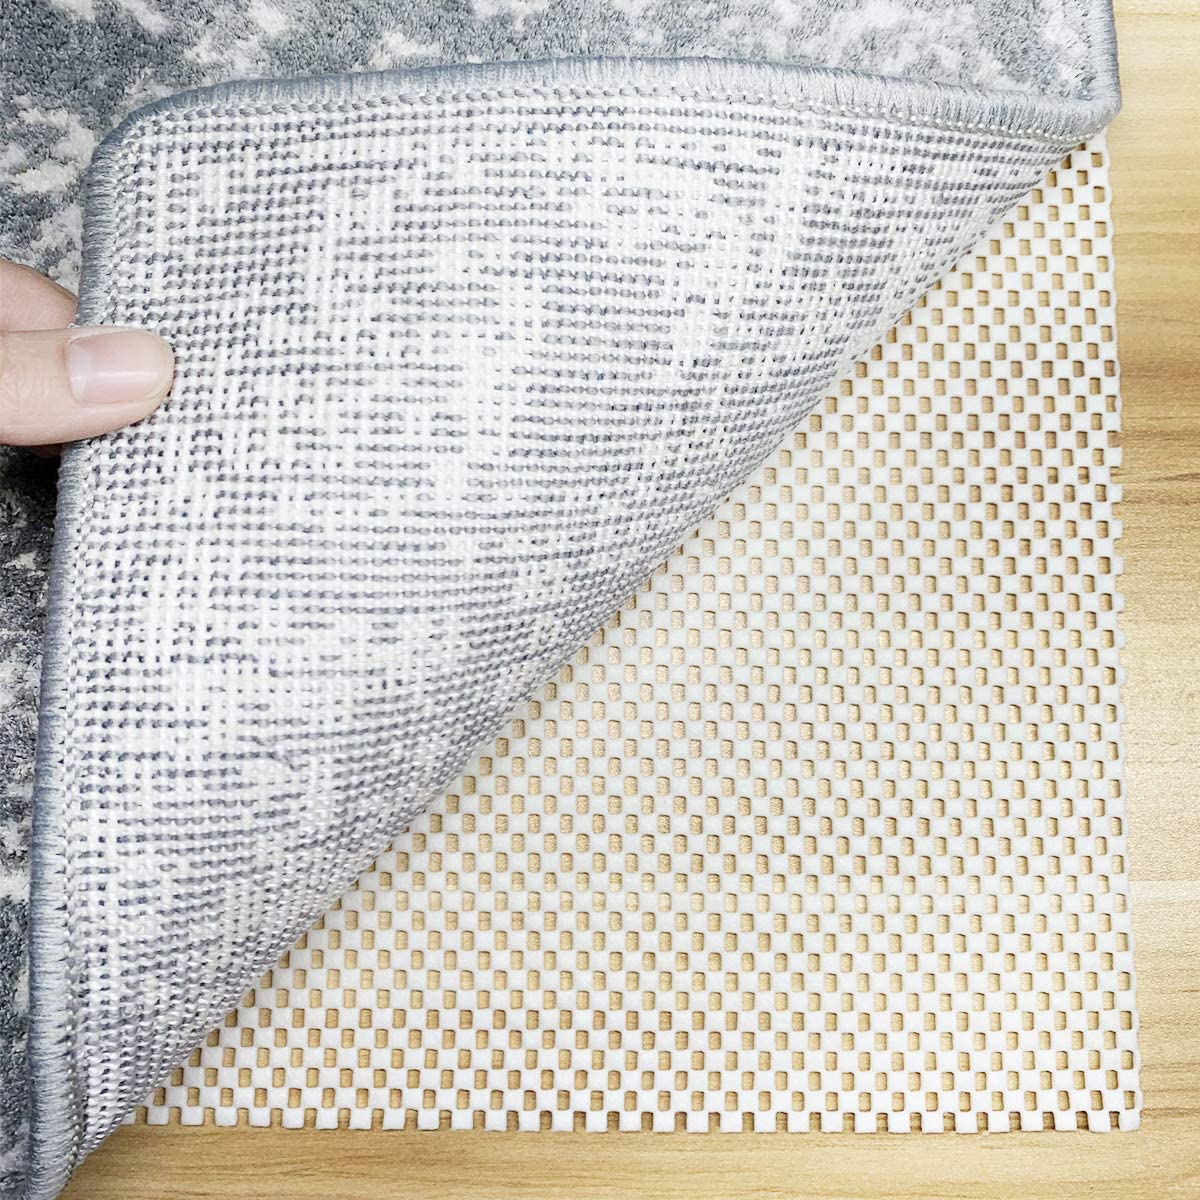 Excellence LINLA Non-Slip Area low-pricing Rug Cushioned Pad for Surface Gripper Hard